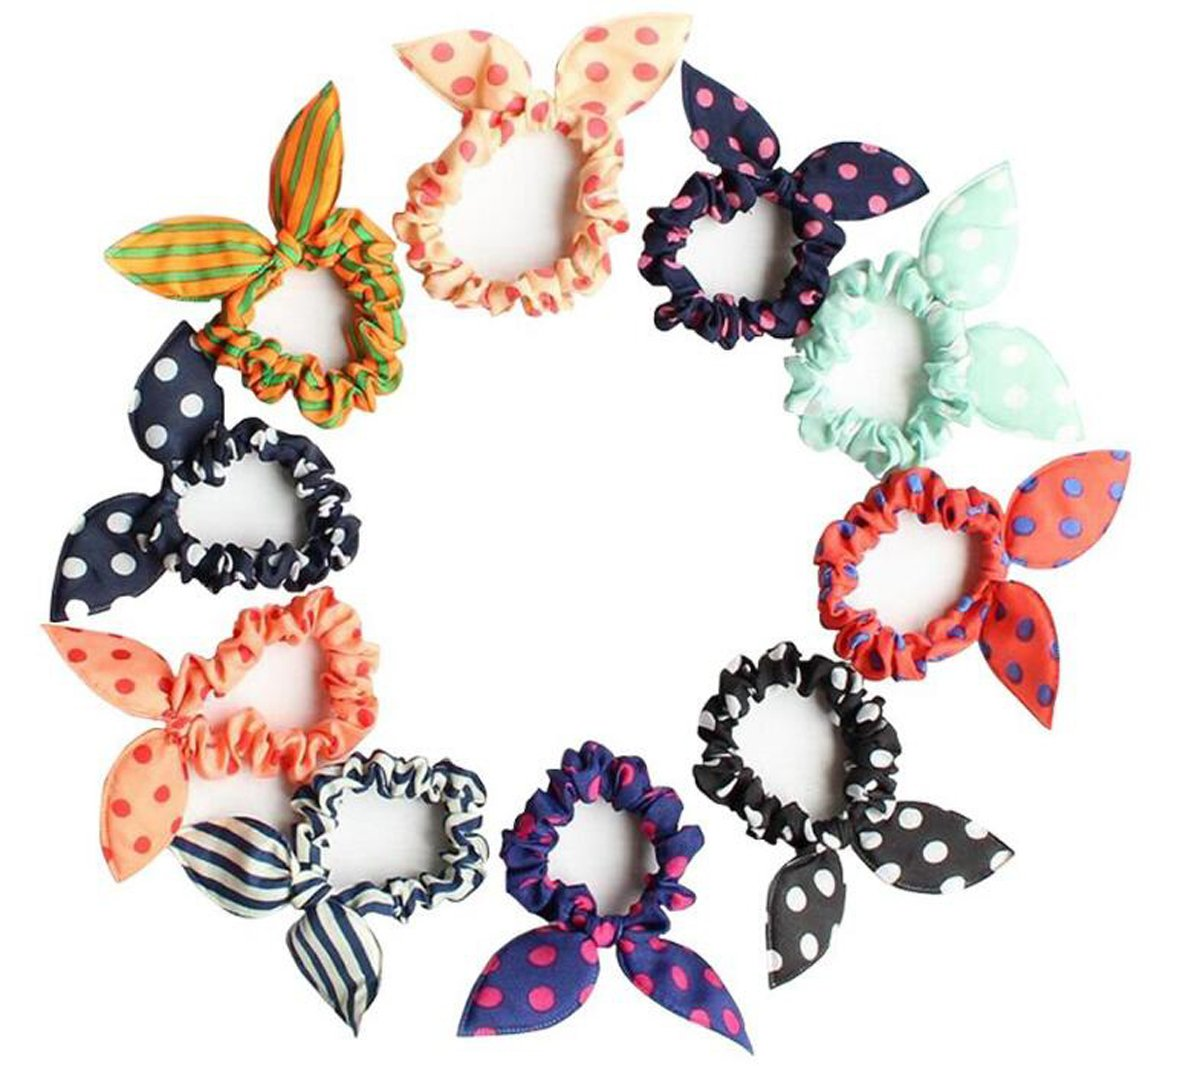 Amazon.com   10PCS Random Color Elastic Bunny Ears Hair Bands Girls  Ponytail Holder Cotton Stretch Hair Ties Rubber Styling Tools Headband  Scrunchie Hair ... 1abcbbaaad6